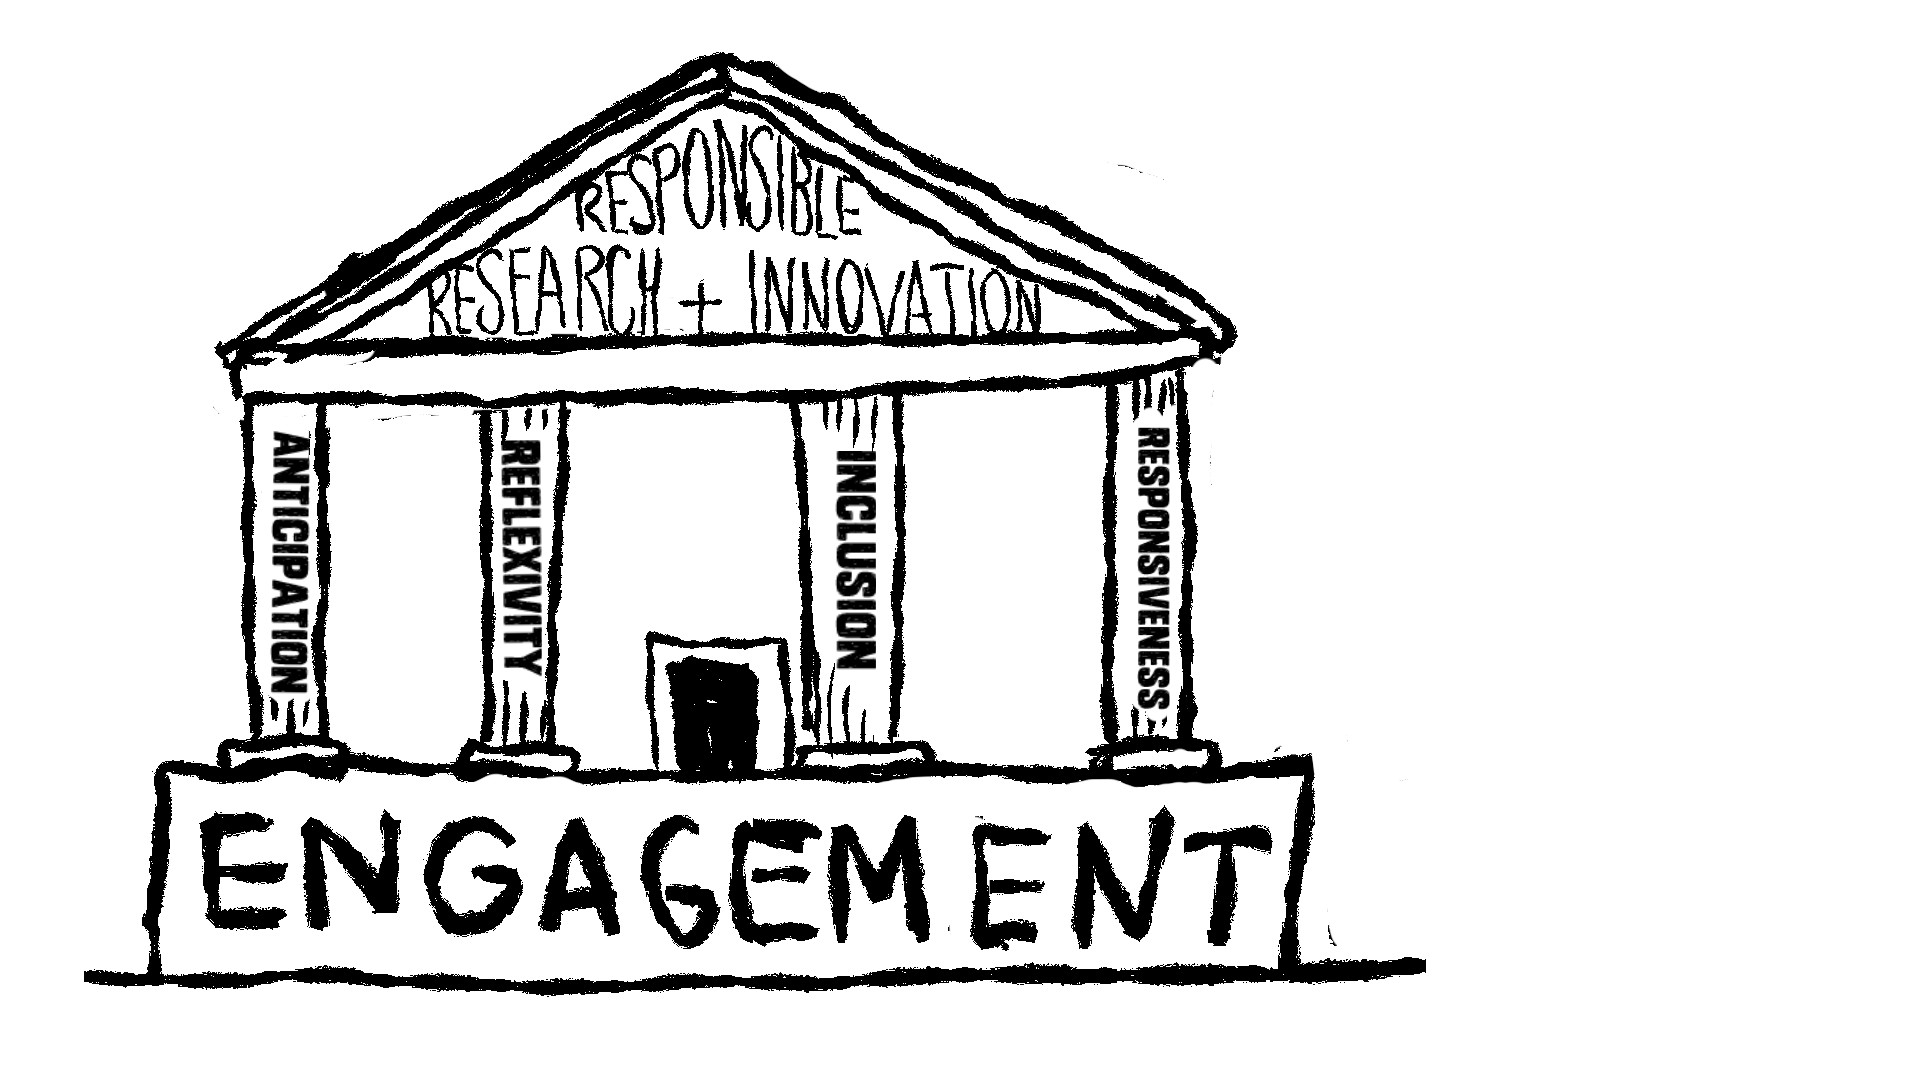 Engagement pillars